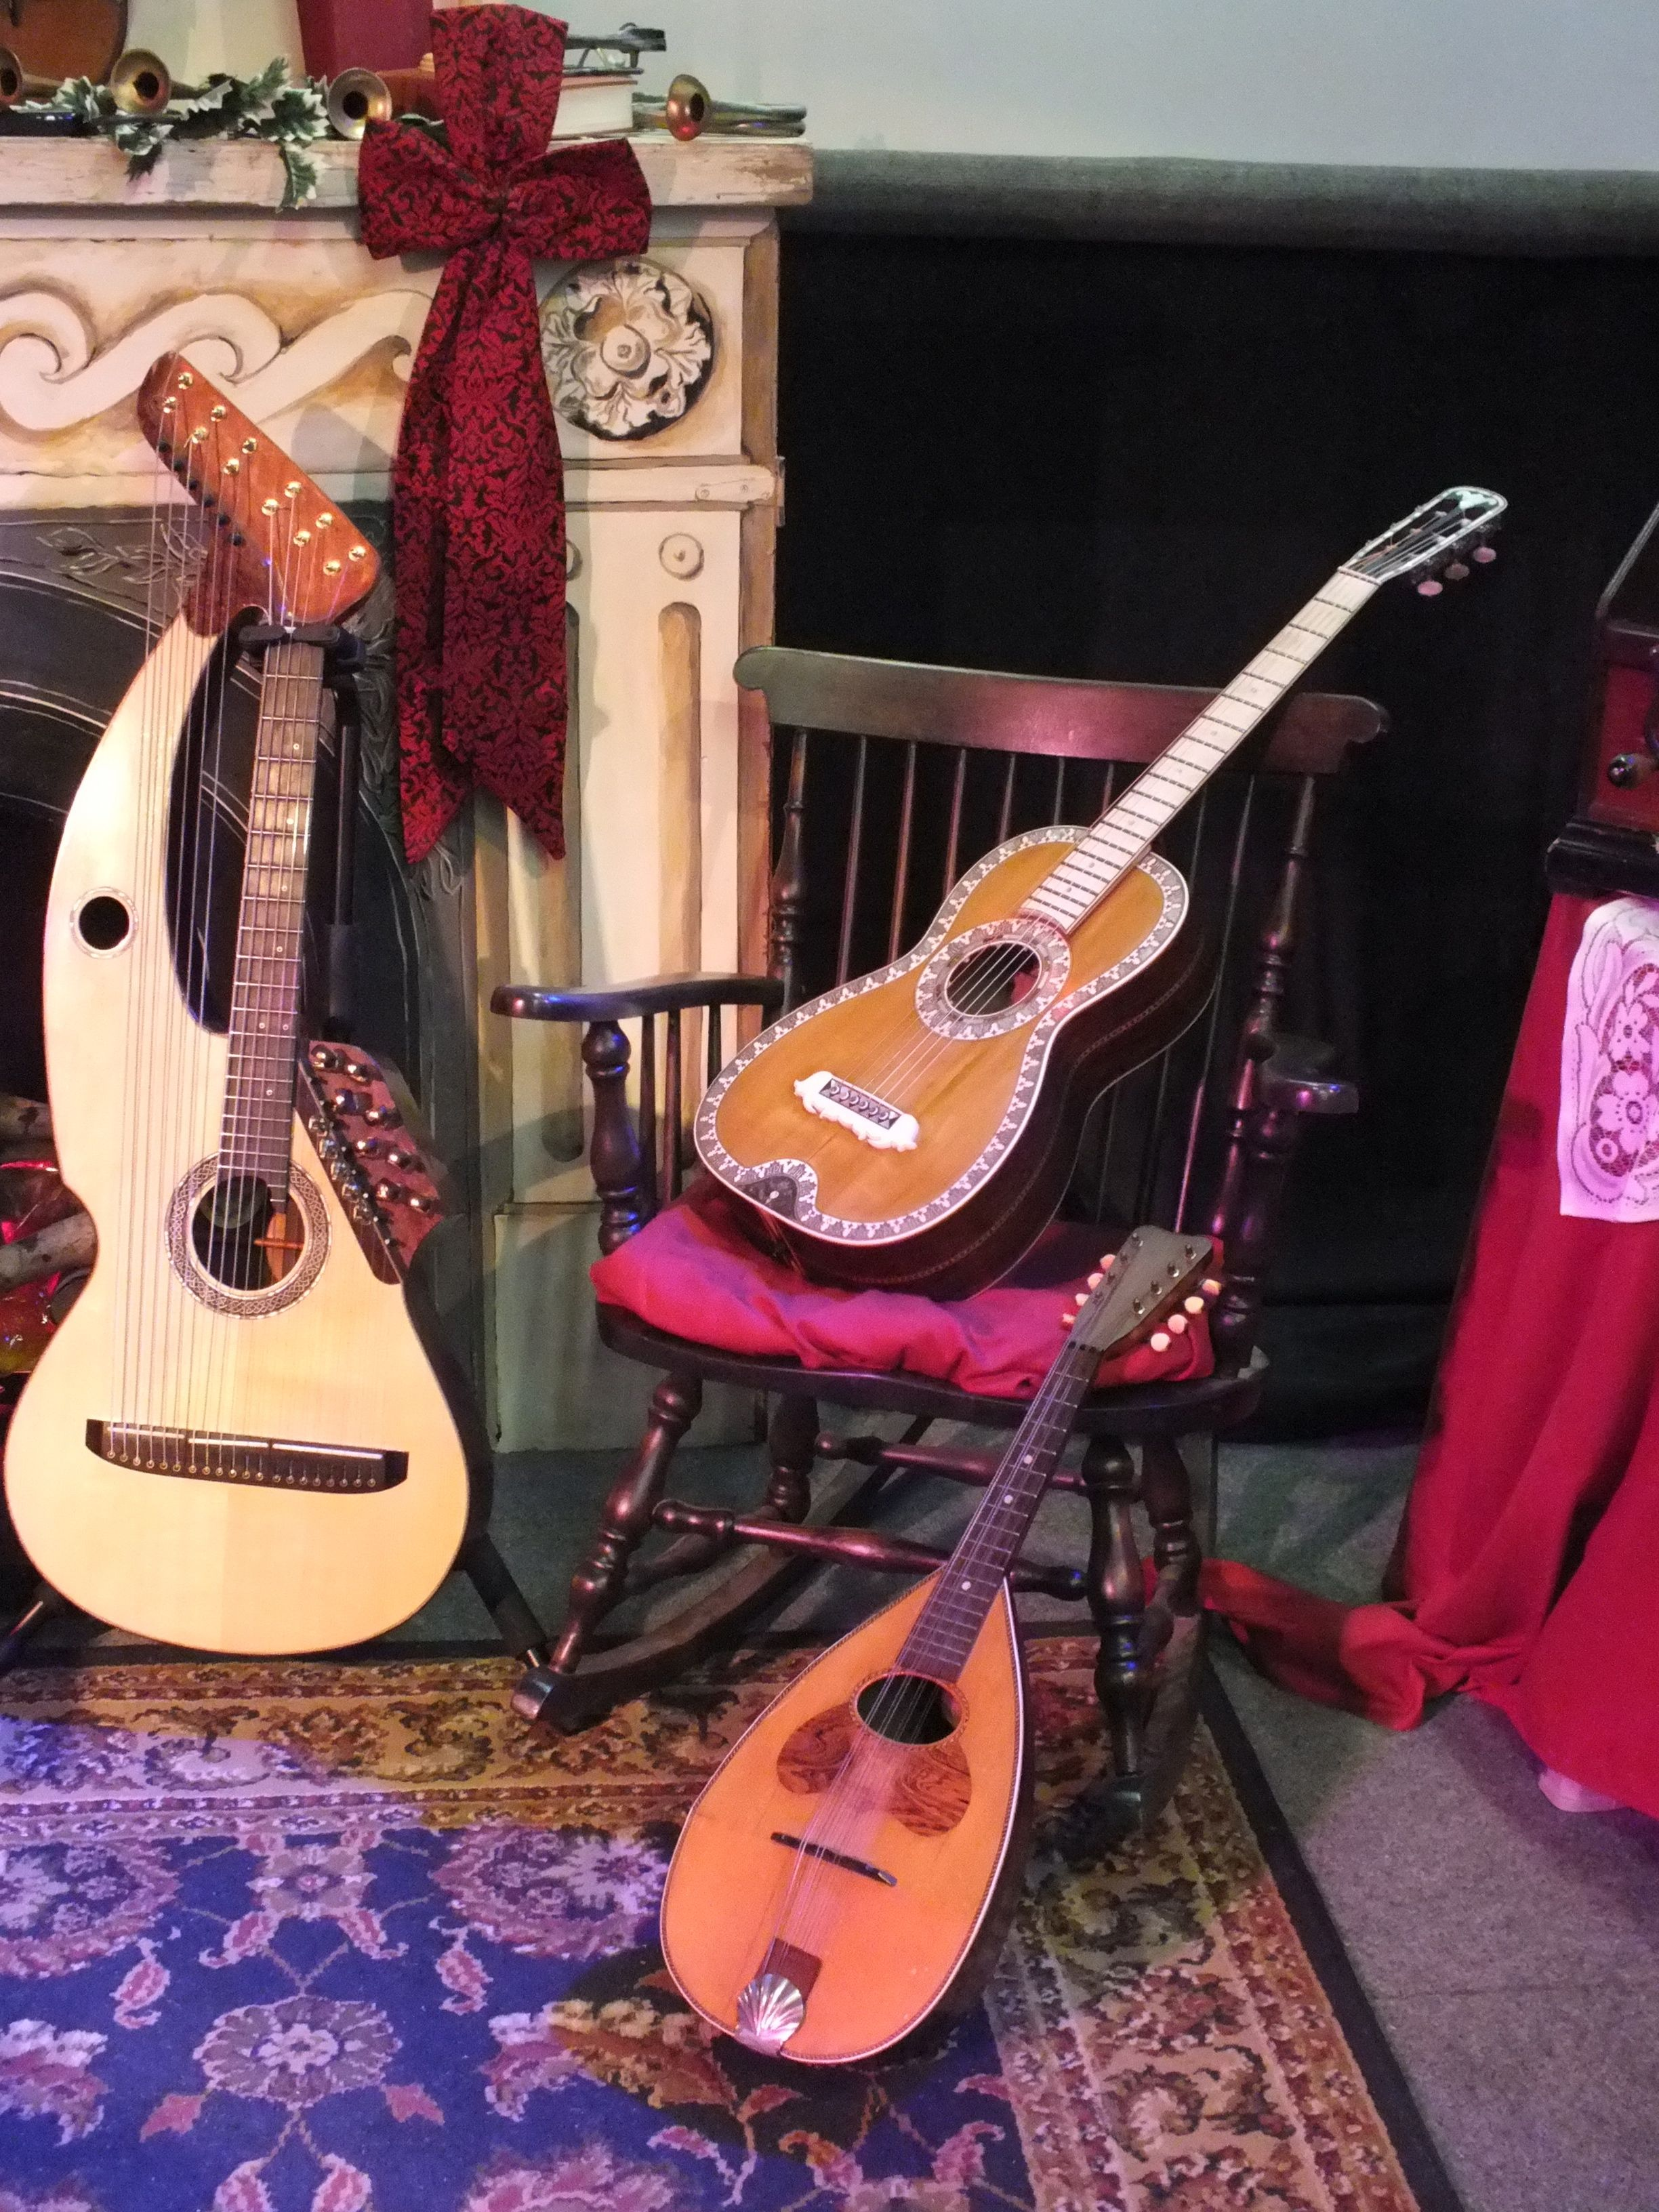 Harp Guitar, Mandoline, and accoustic guitar collection - John Doan.